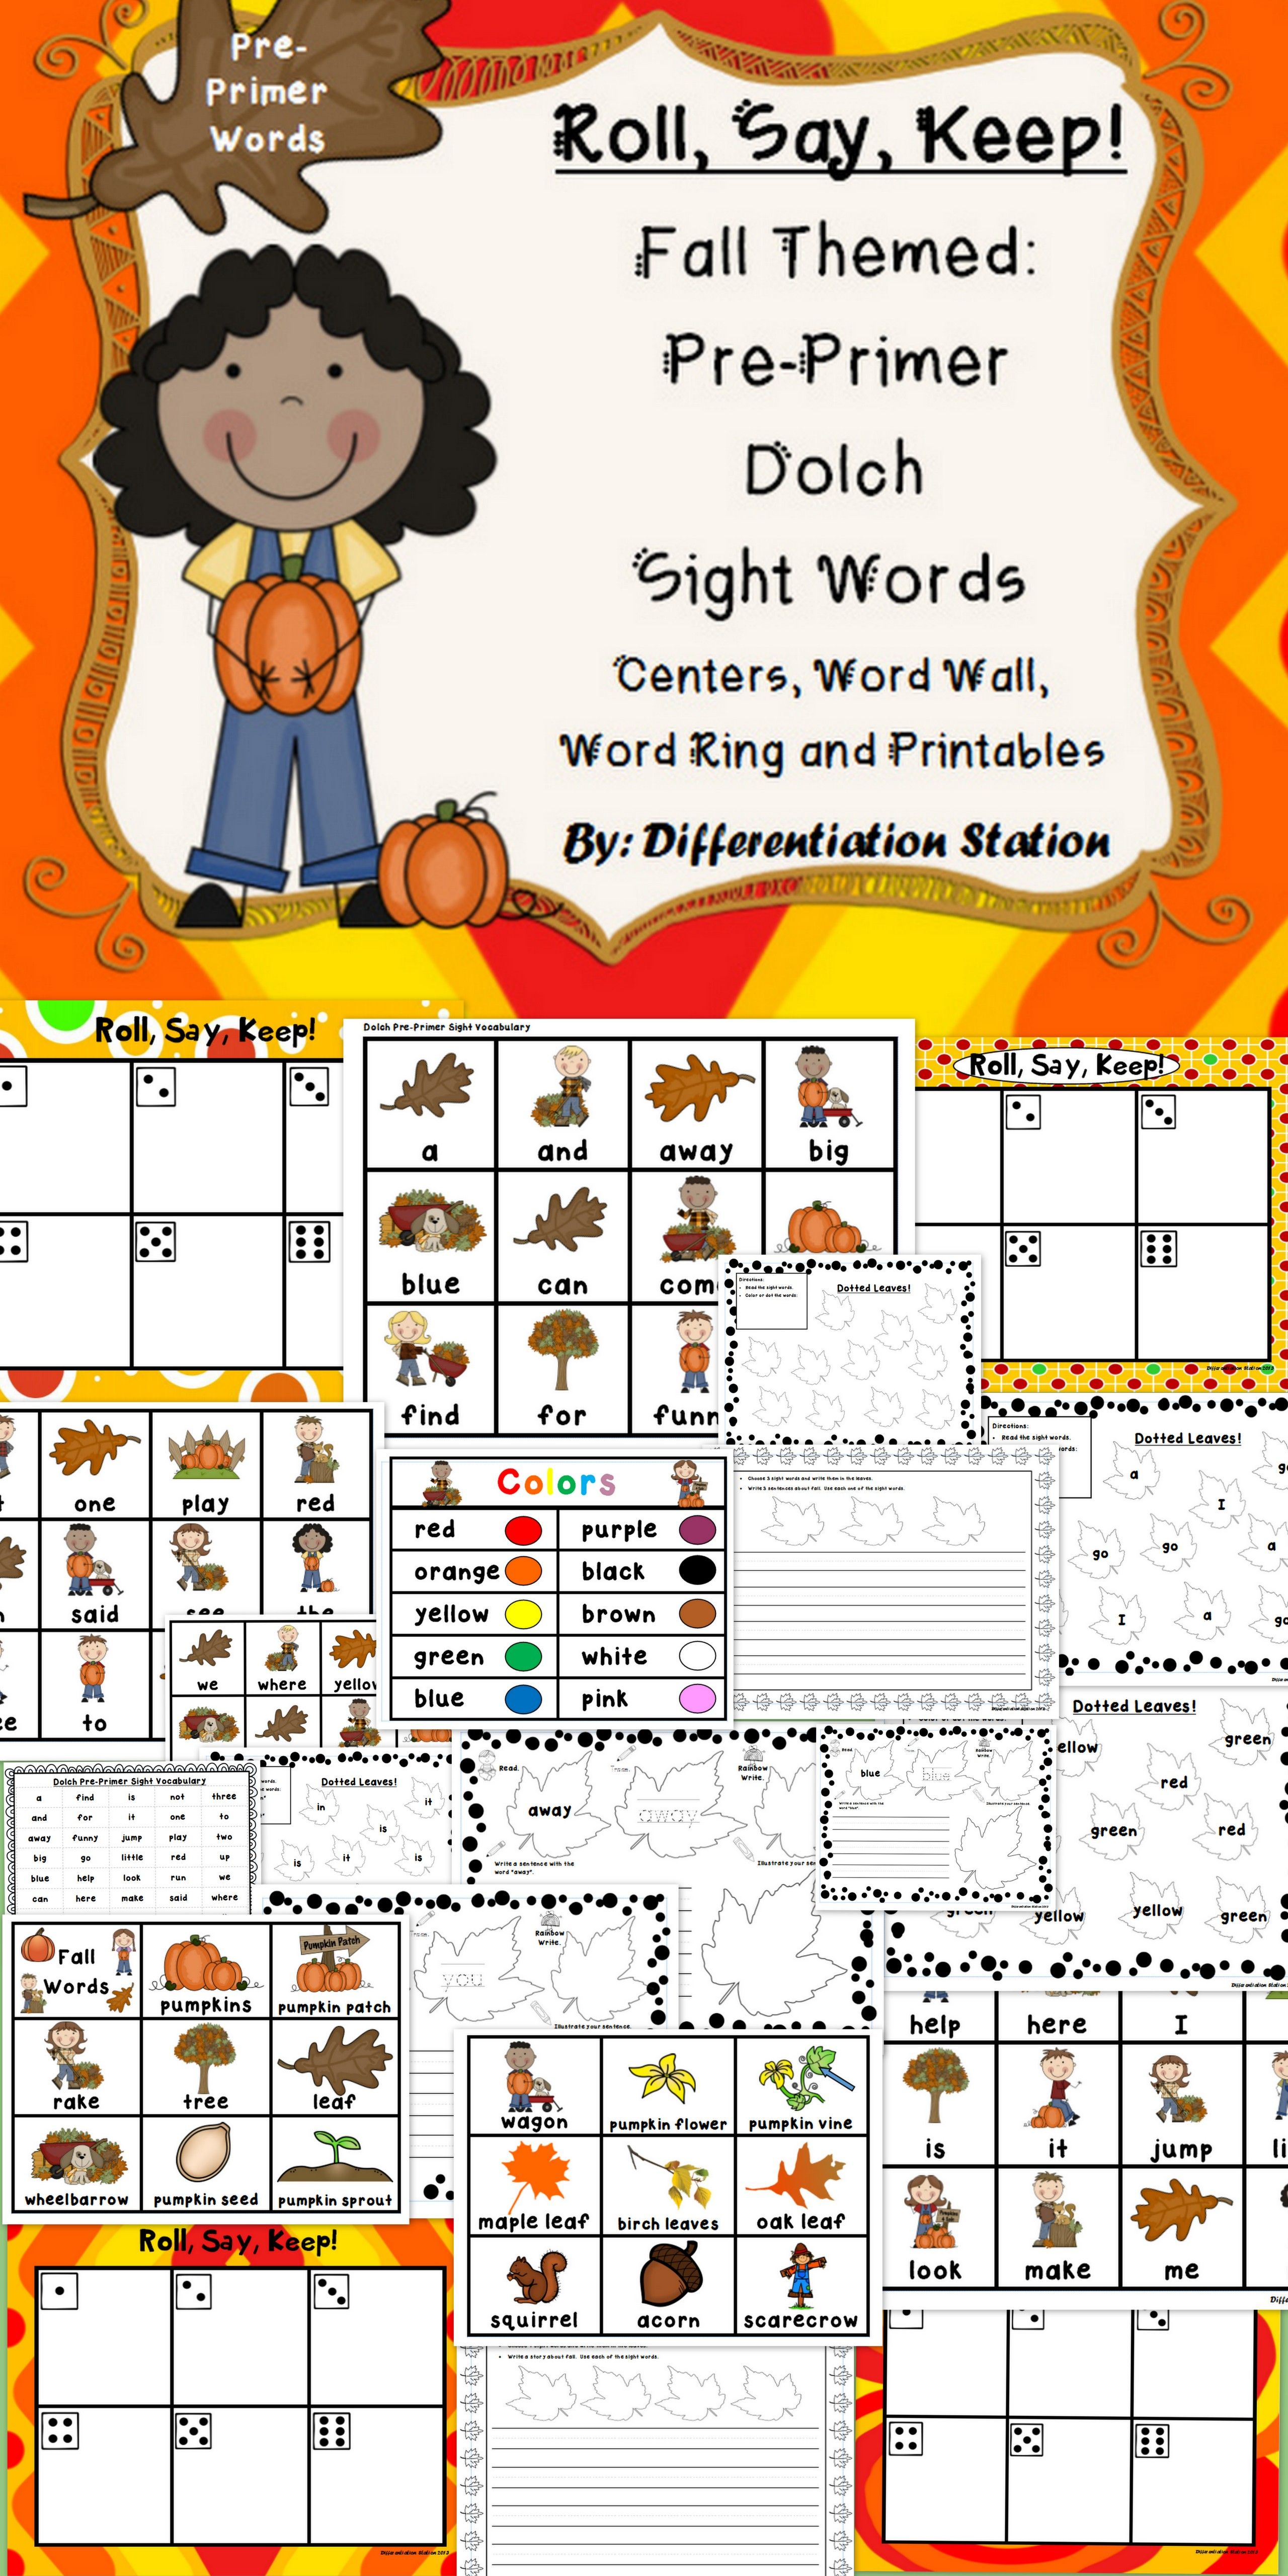 Fall Roll Say Keep Pre Primer Dolch Sight Word Center